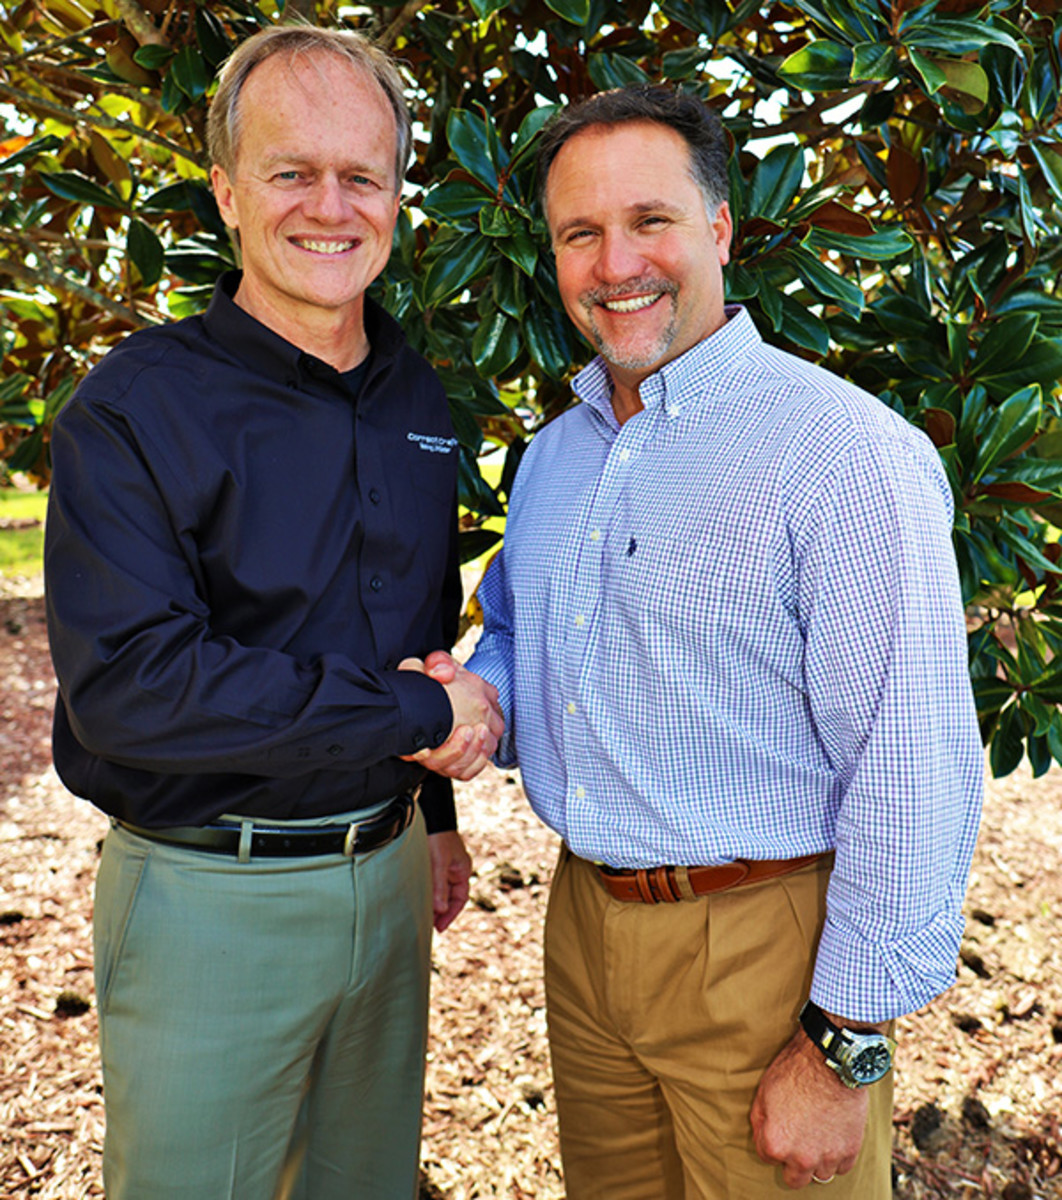 Paul Singer (right) was named president of Correct Craft brands Centurion Boats and Supreme Boats. He is shown with Correct Craft CEO Bill Yeargin.